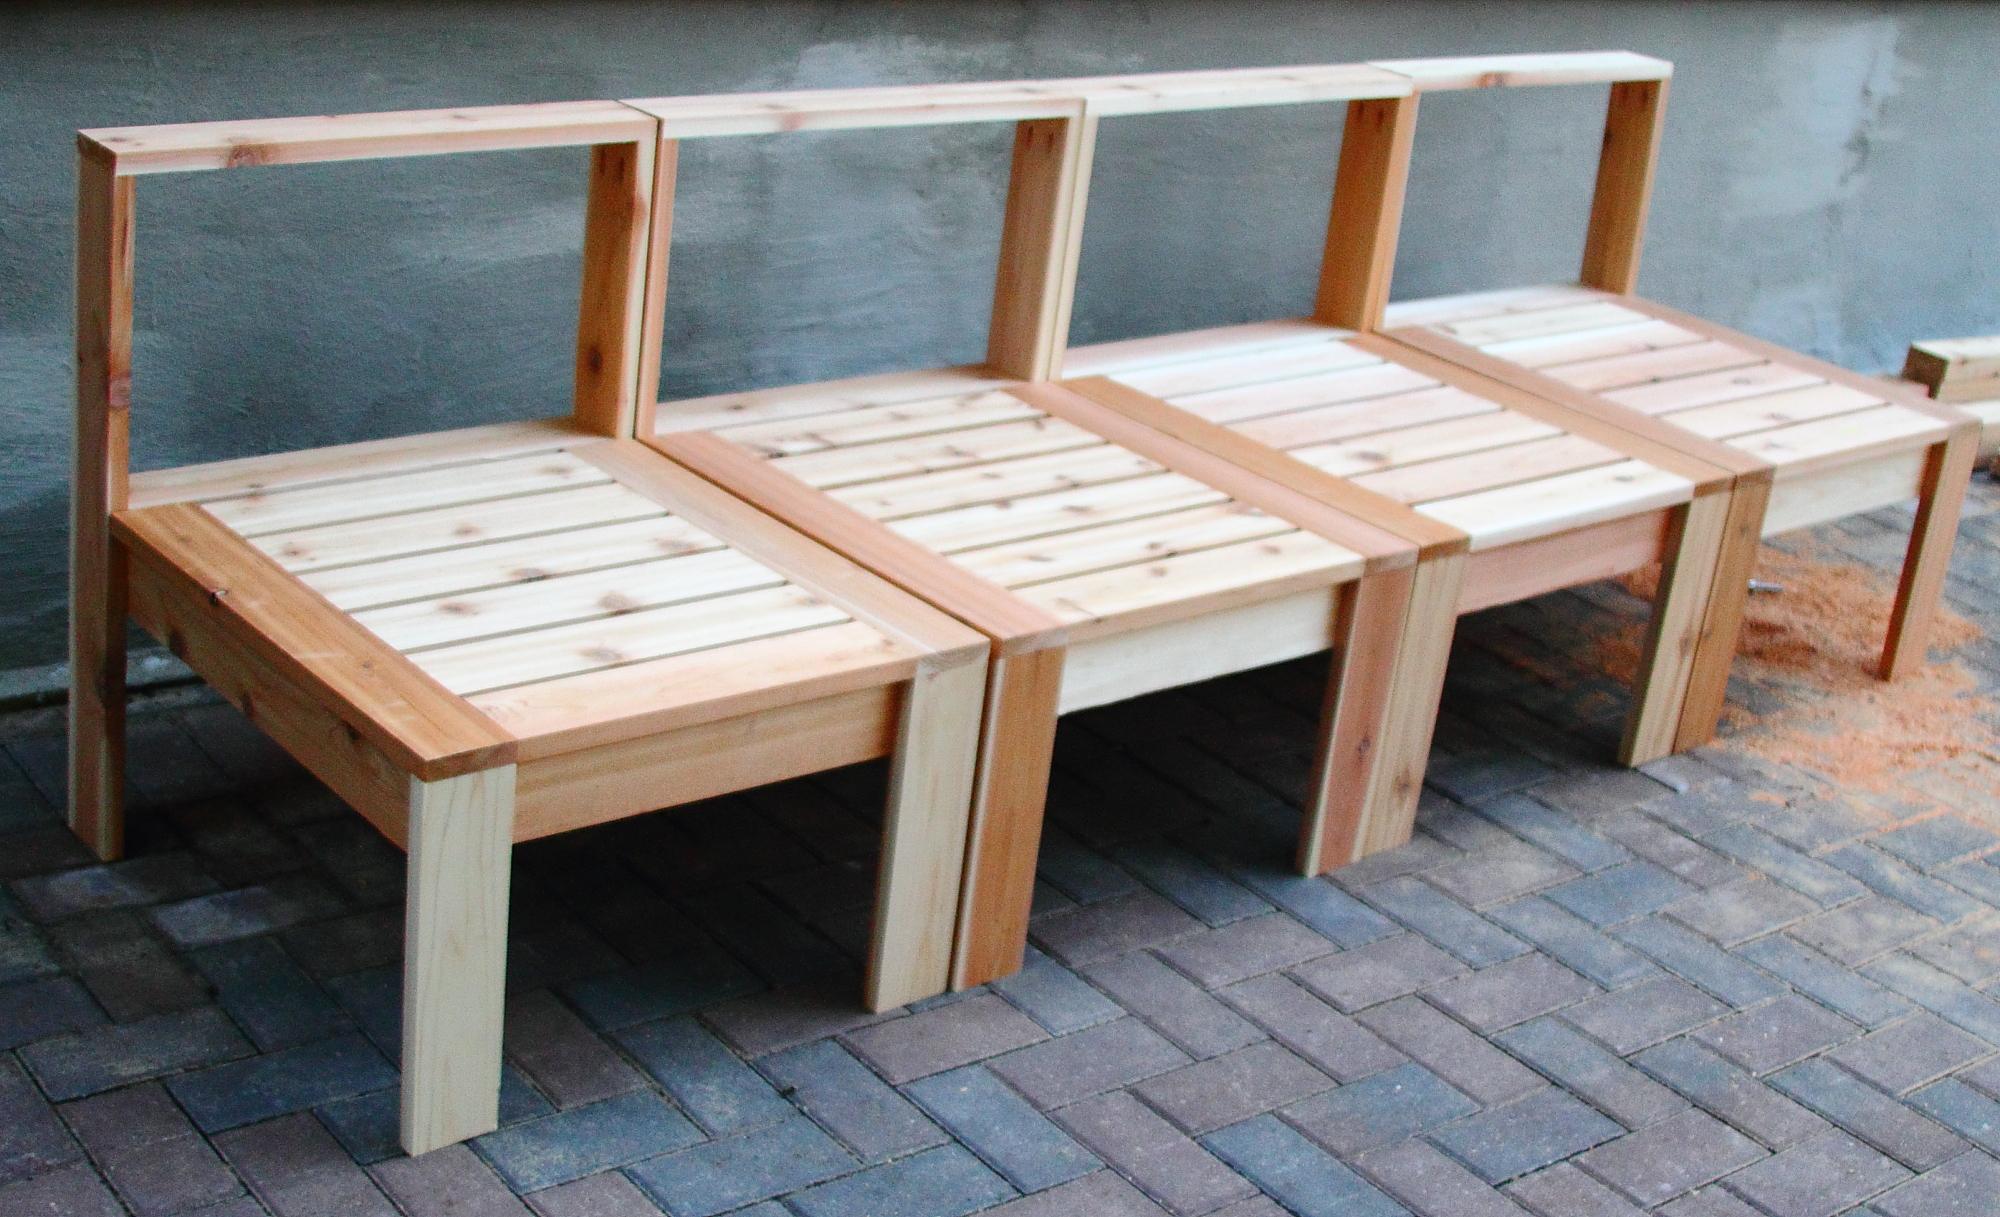 15 really creative diy furniture hacks ideas hgnv view in gallery creative wood bench patio furniture diy projects solutioingenieria Gallery